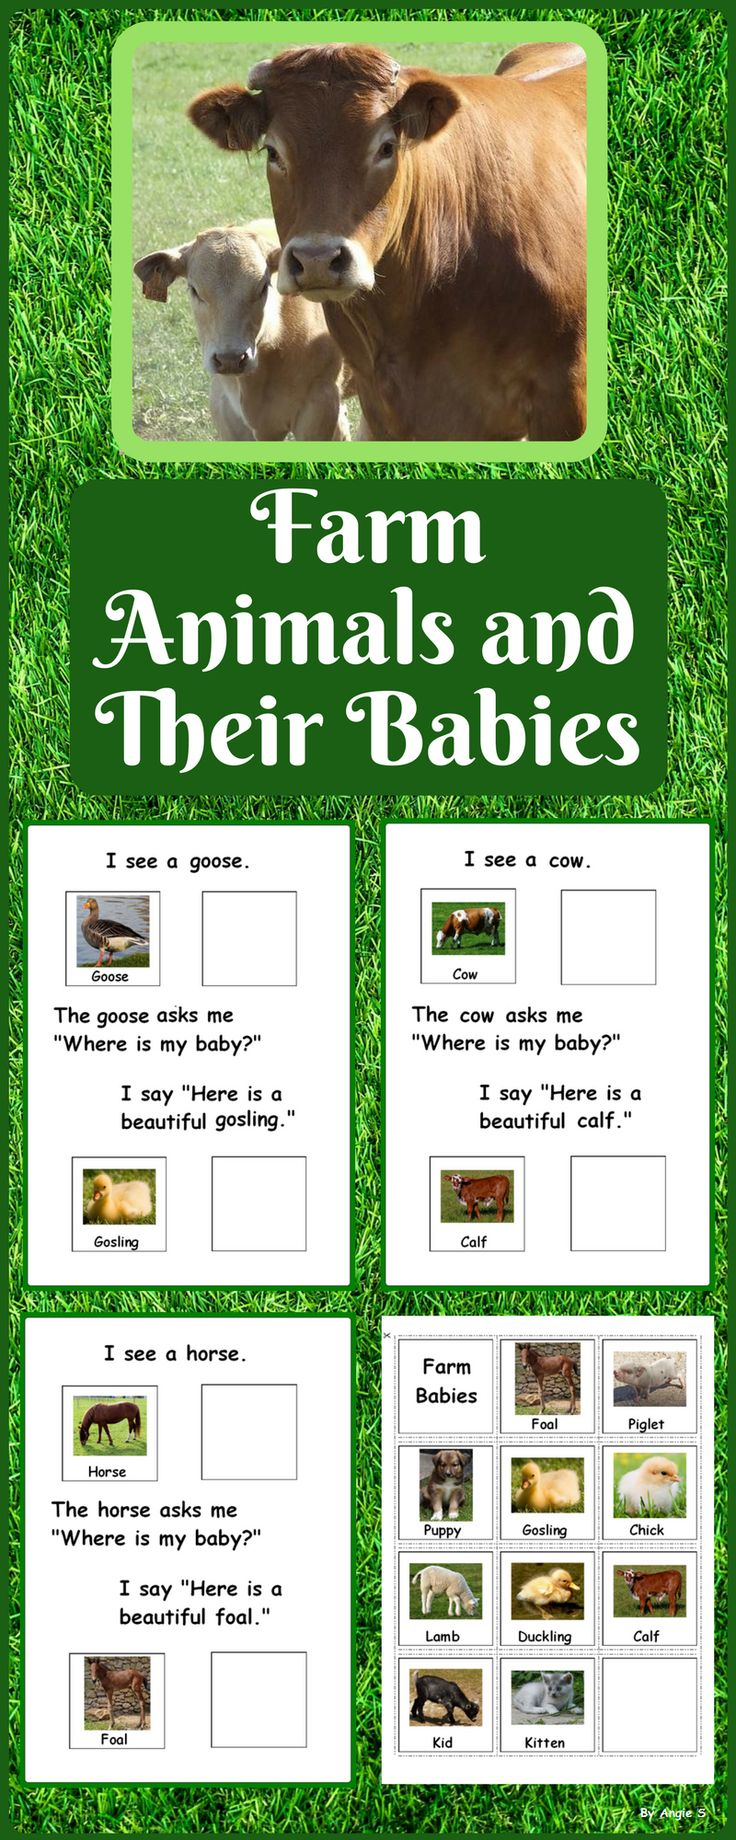 Farm Animals and Their Babies for Autism, Speech Therapy, ABA, Special Education, ESL This is a 11 page book great for young children ages 3-5 as well as for children with autism and special needs. #farmanimals #farm #vocabulary #adaptedbook #autism 3sped #specialeducation #earlyintervention #speechtherapy #slp #tpt #teacherspayteachers #teachingresource #farmbabies